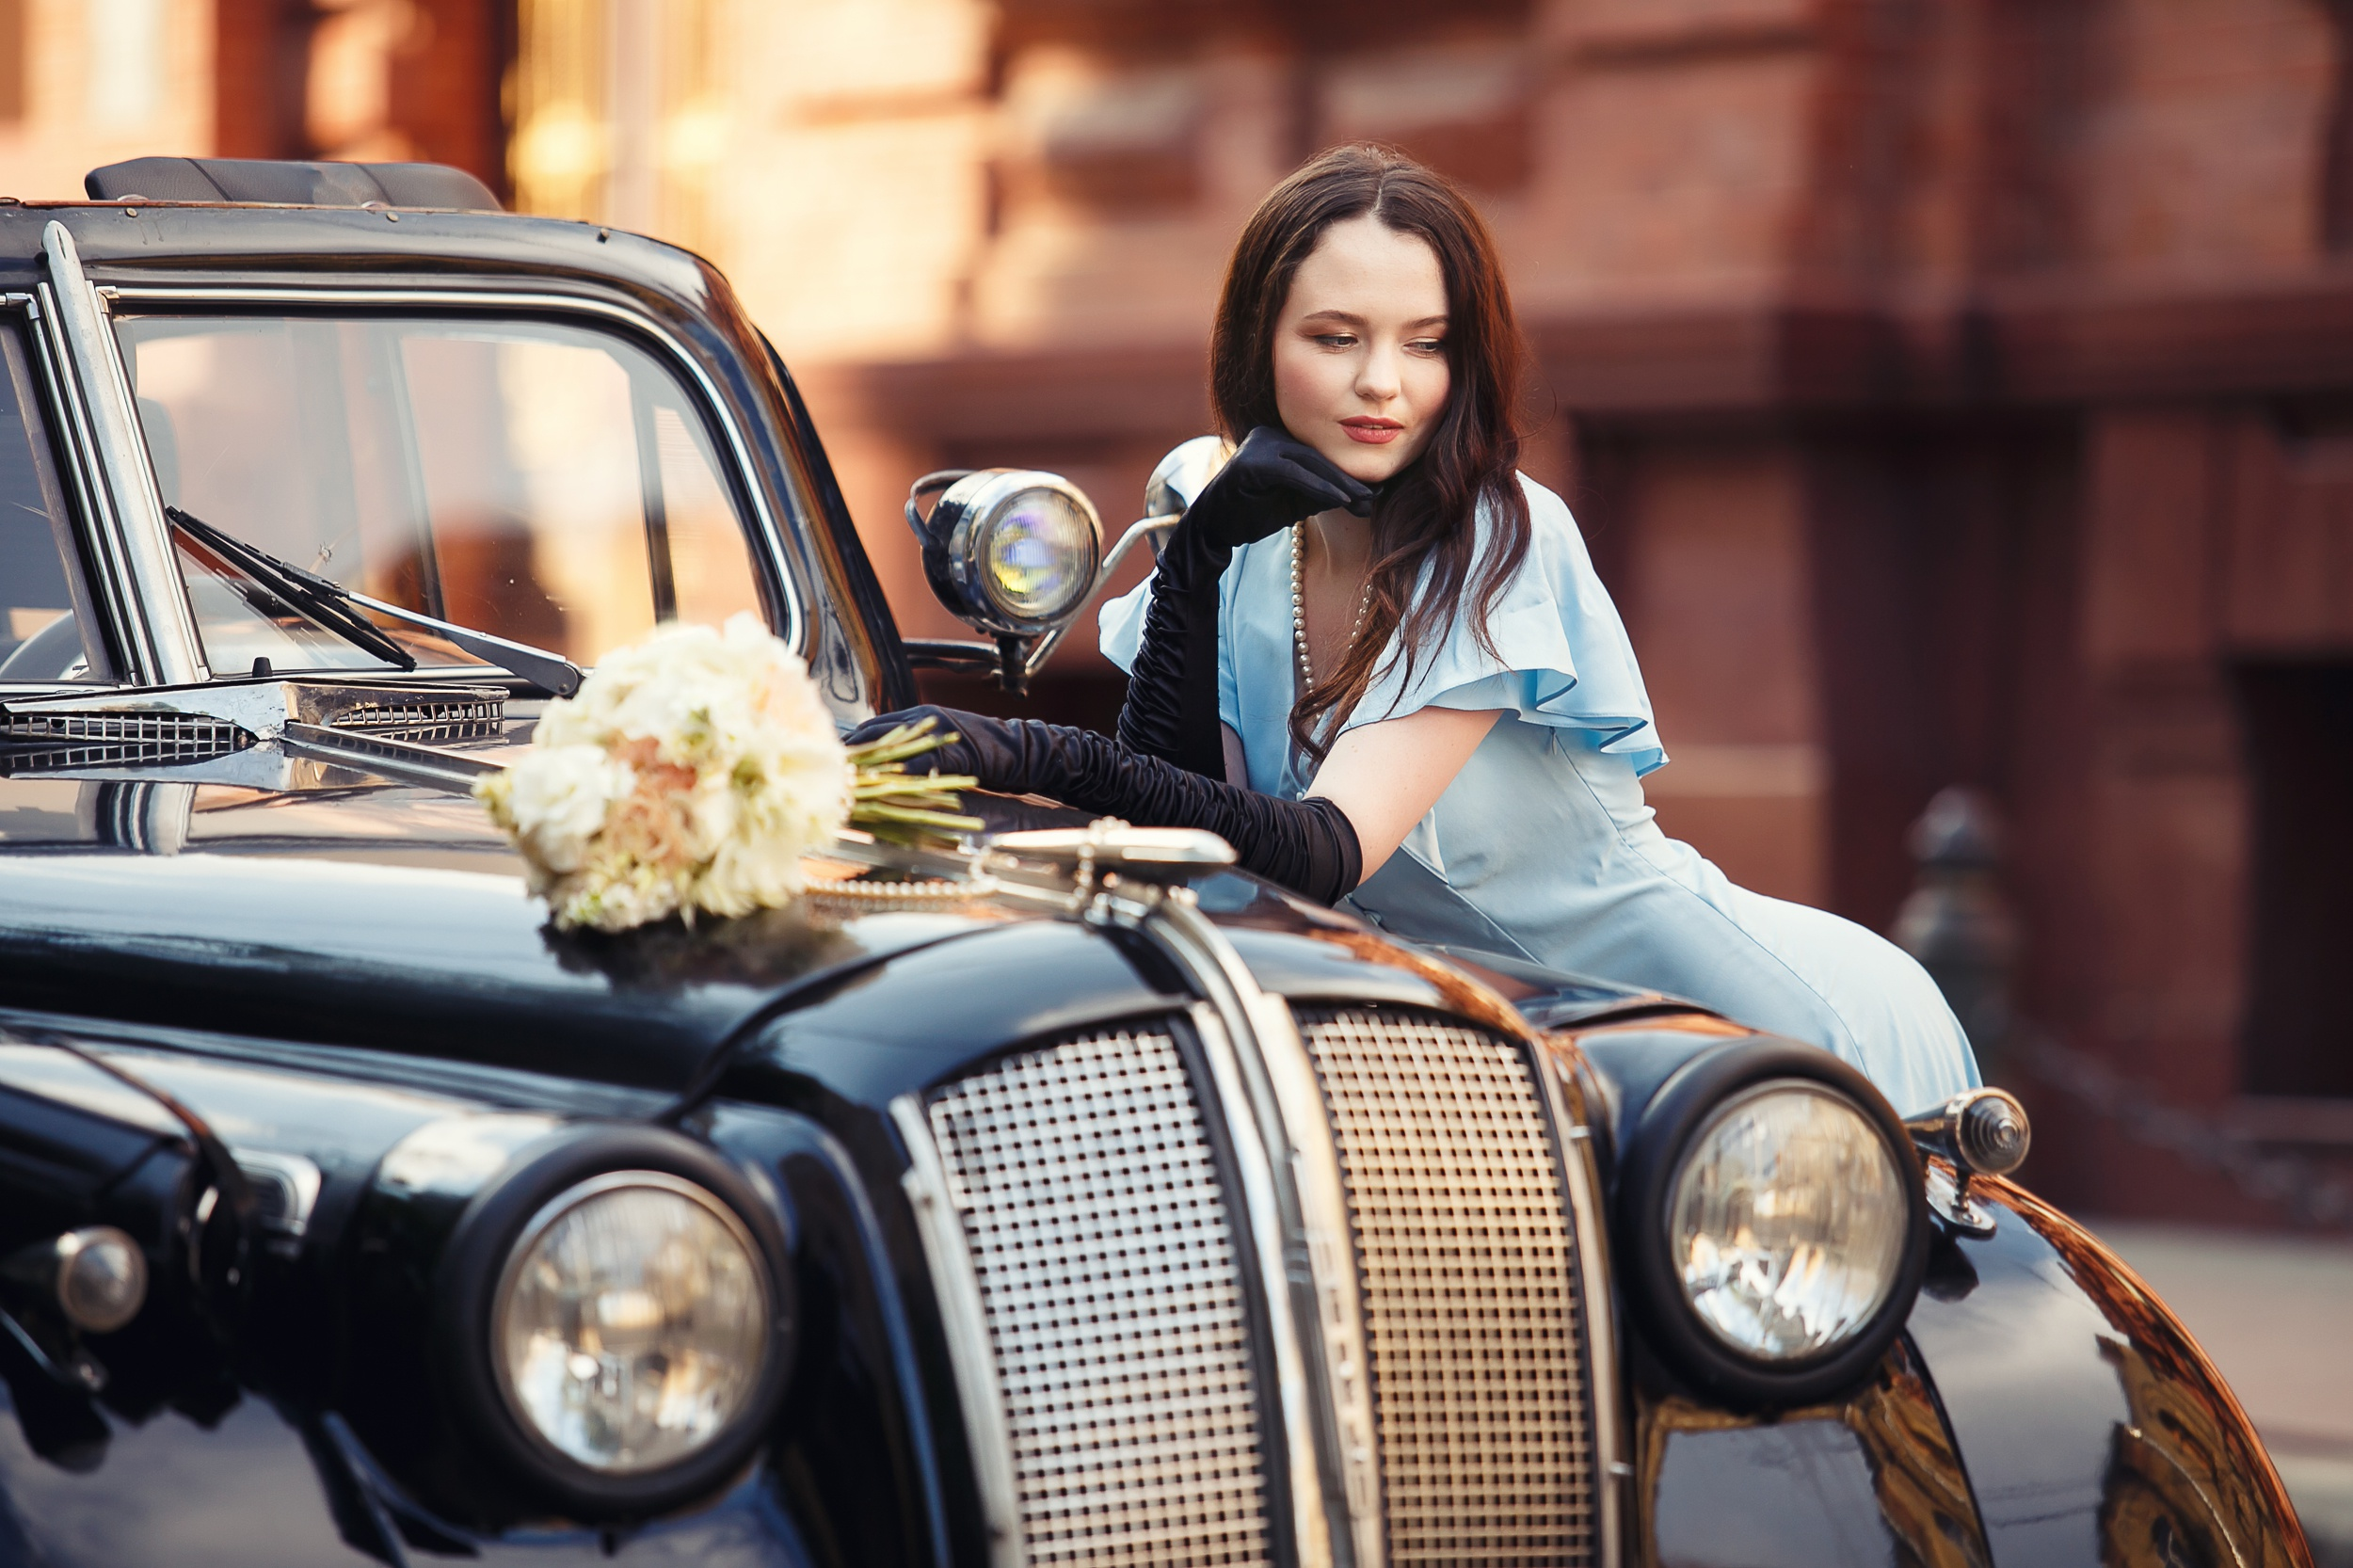 Women Urban Outdoors Women Outdoors Women With Cars Car Vehicle Black Cars Pearl Necklace Brunette M 2500x1666